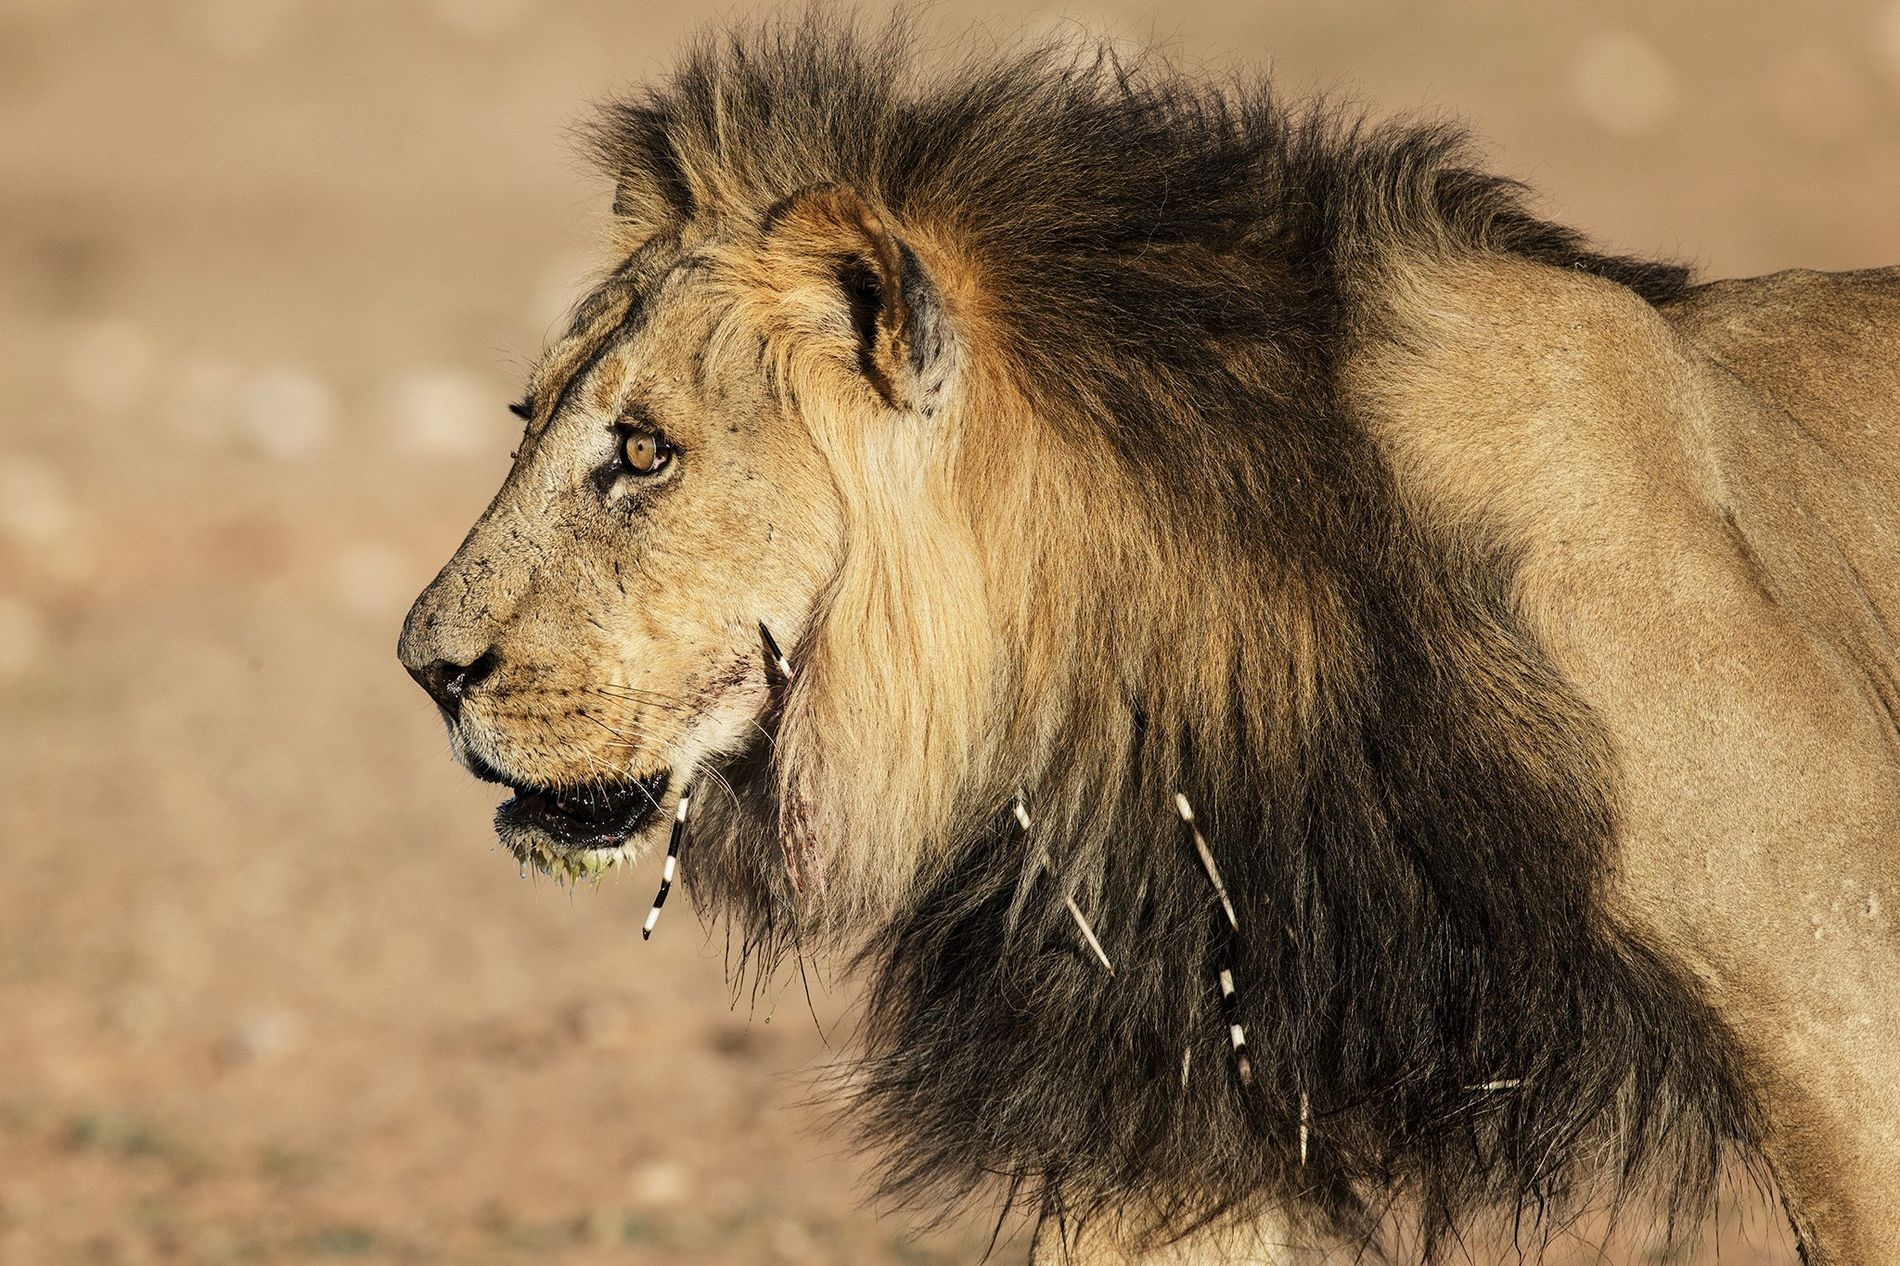 A lion with porcupine quills stuck in his face and neck, in South Africa's Kgalagadi Transfrontier ...